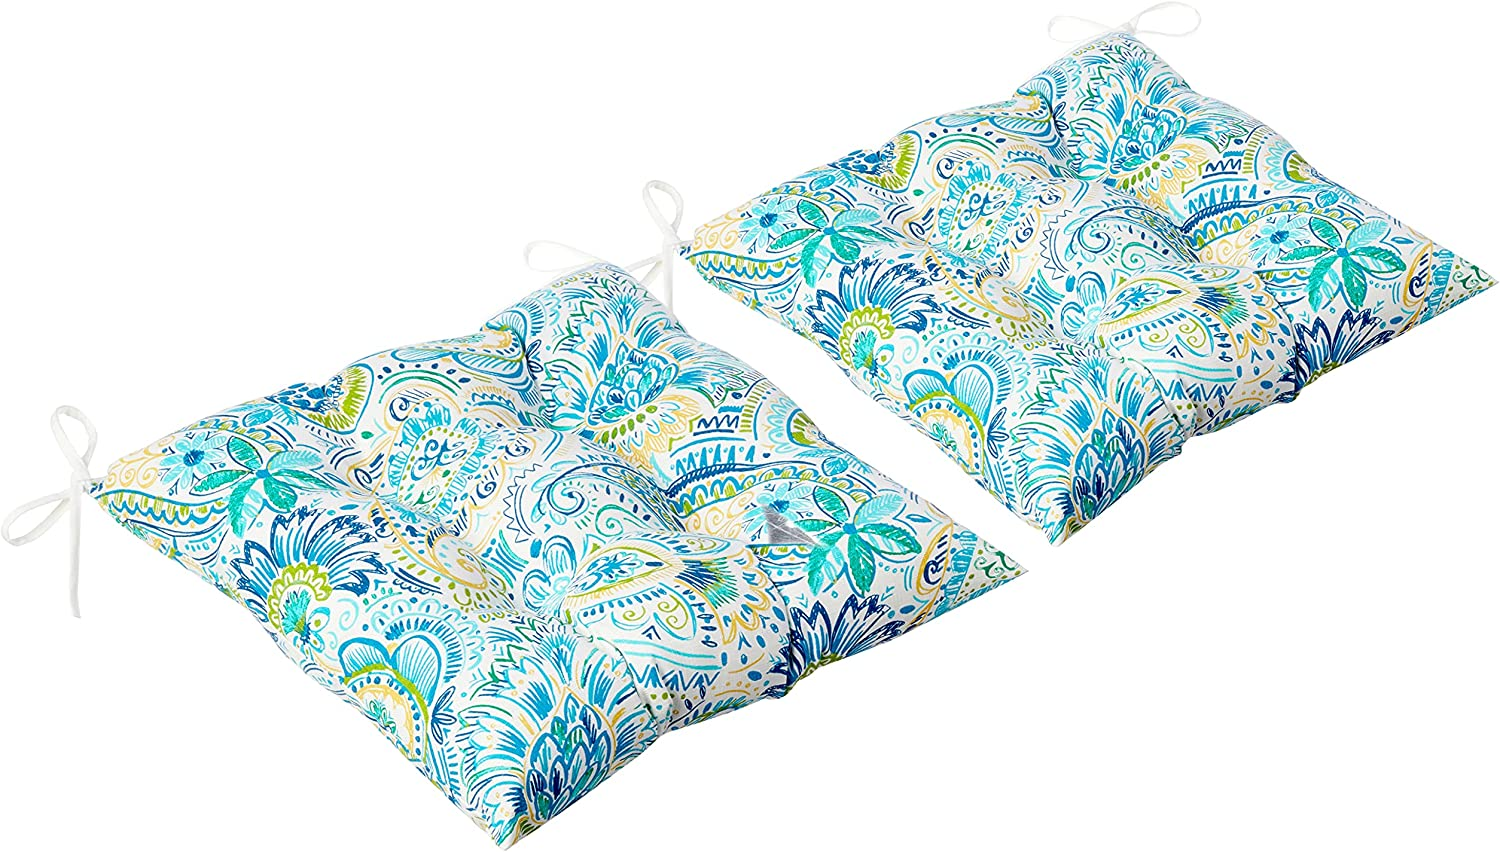 Pillow Perfect Outdoor depot Indoor Gilford Tufted latest Baltic Seat Cushion